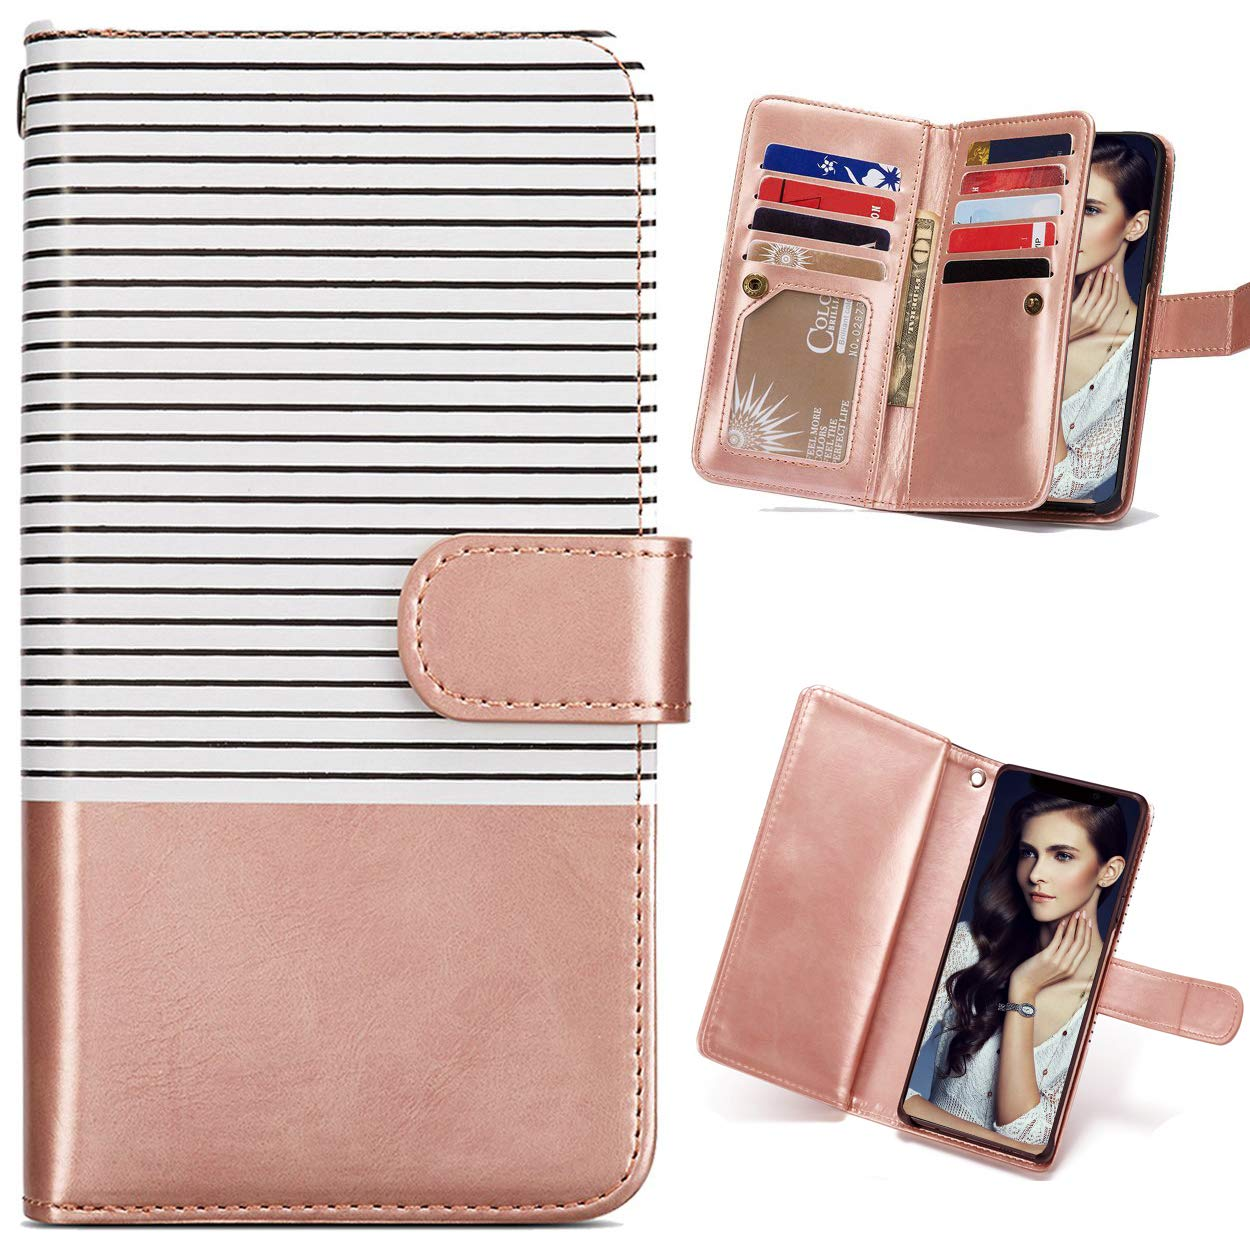 FLYEE iPhone 11 Wallet Case,Detachable 2in1 case Fit Car Mount Magnet Closure Premium Leather Purse 9 Card Slots Flip Cover with Wrist Strap for Apple iPhone 11 6.1 inch [Rose Gold Stripe]